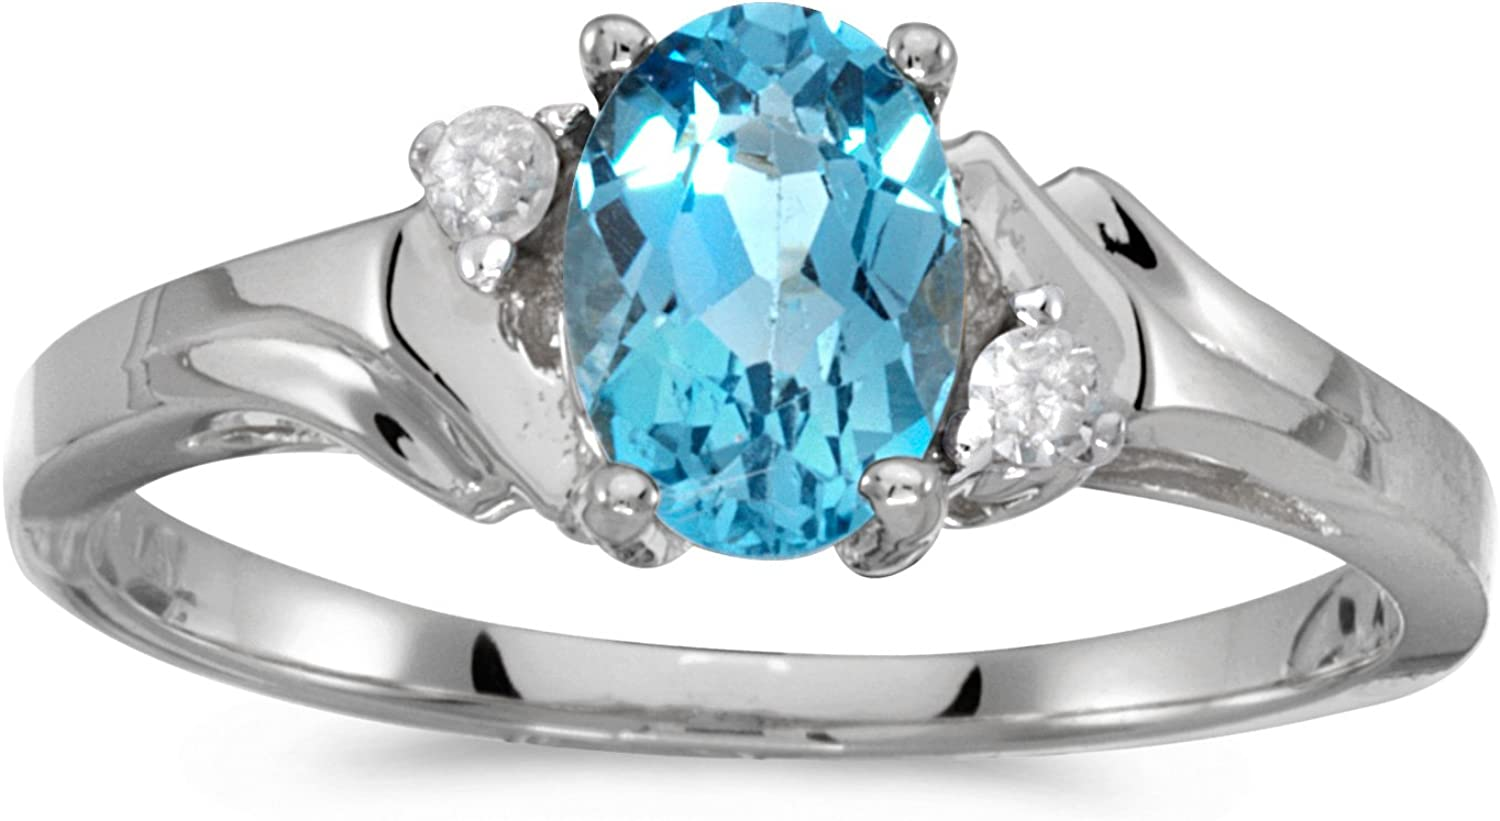 FB Jewels 10k White Gold Genuine Blue Birthstone Solitaire Oval Blue Topaz And Diamond Wedding Engagement Statement Ring - Size 6 (2/3 Cttw.)